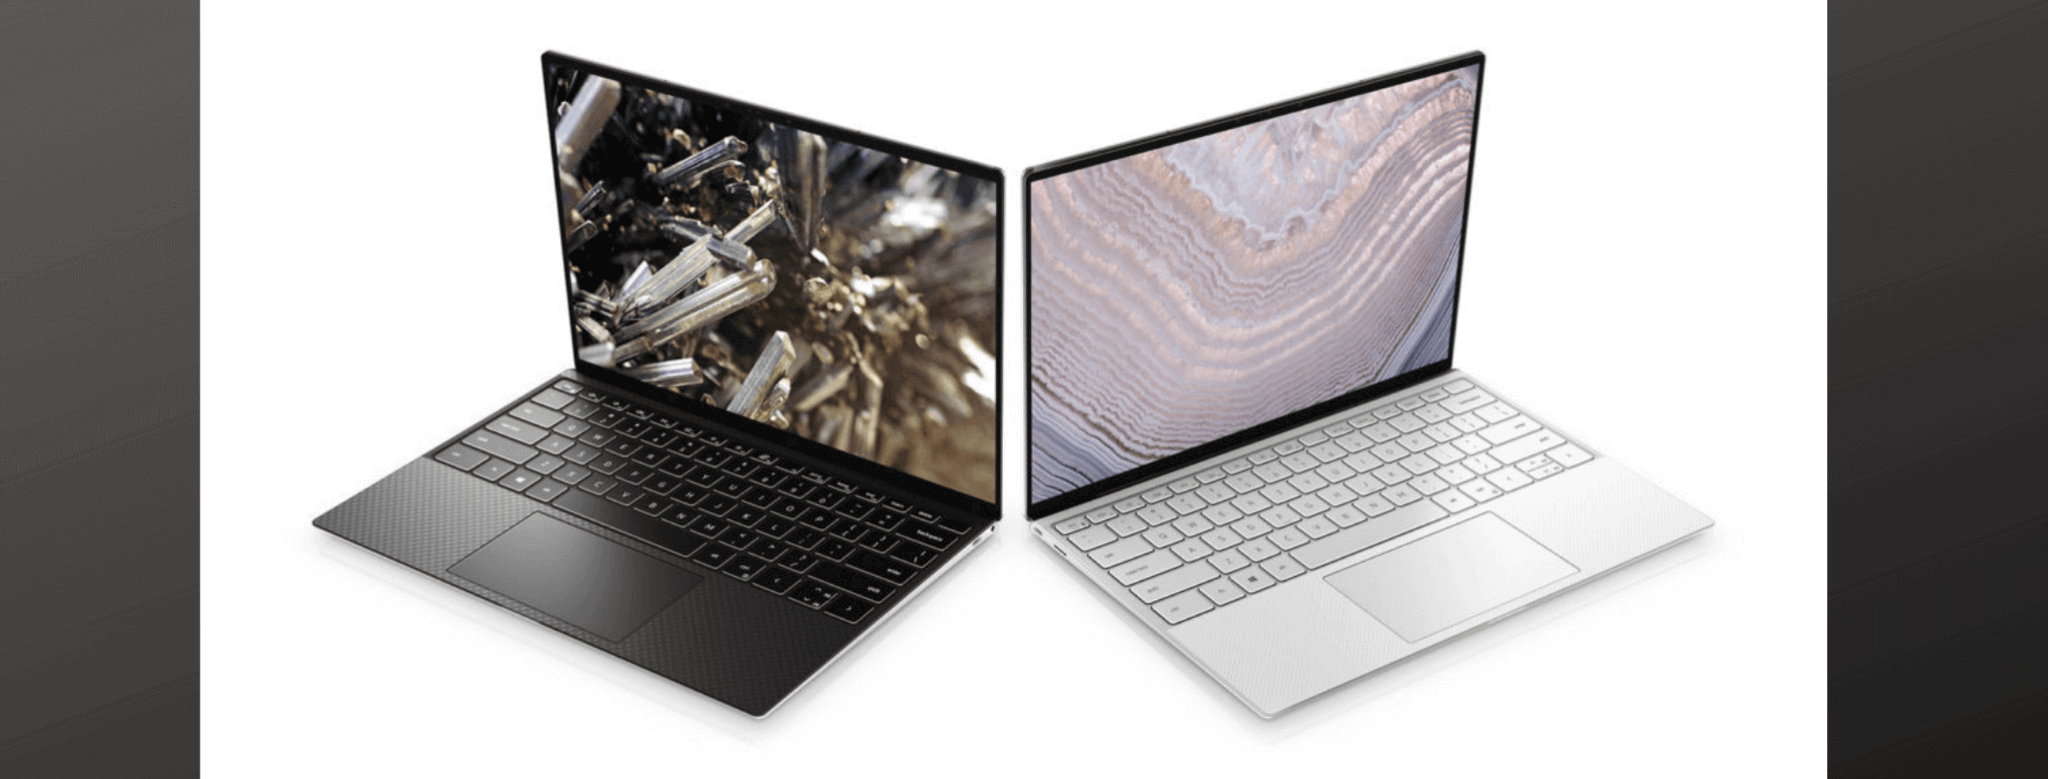 Dell's XPS 13 Gets a High-performance with Intel's 11th-gen opengrowth